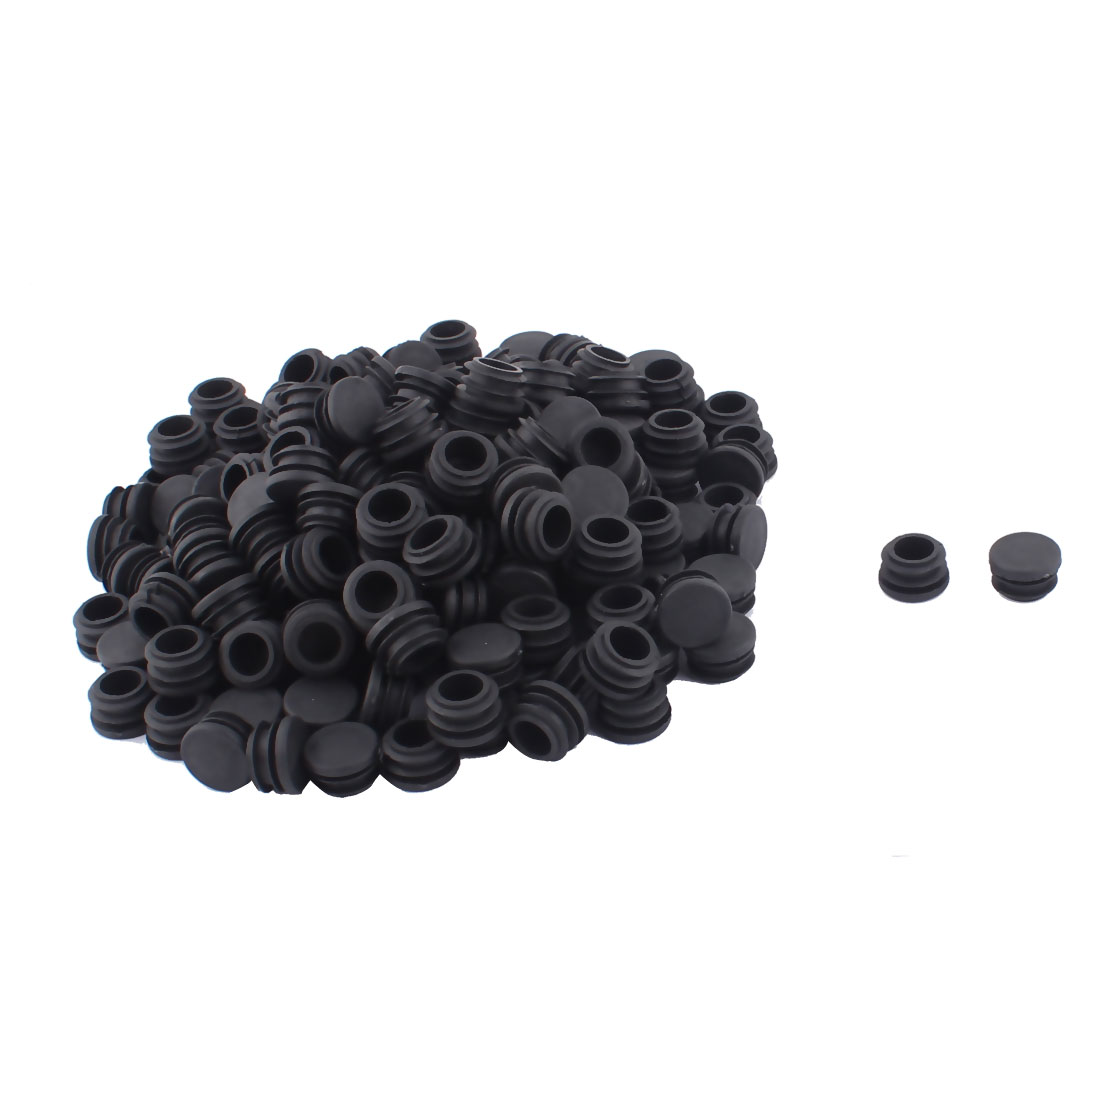 Furniture Table Chair Legs Plastic Flat Base Round Tube Pipe Insert Black 22mm Dia 200pcs